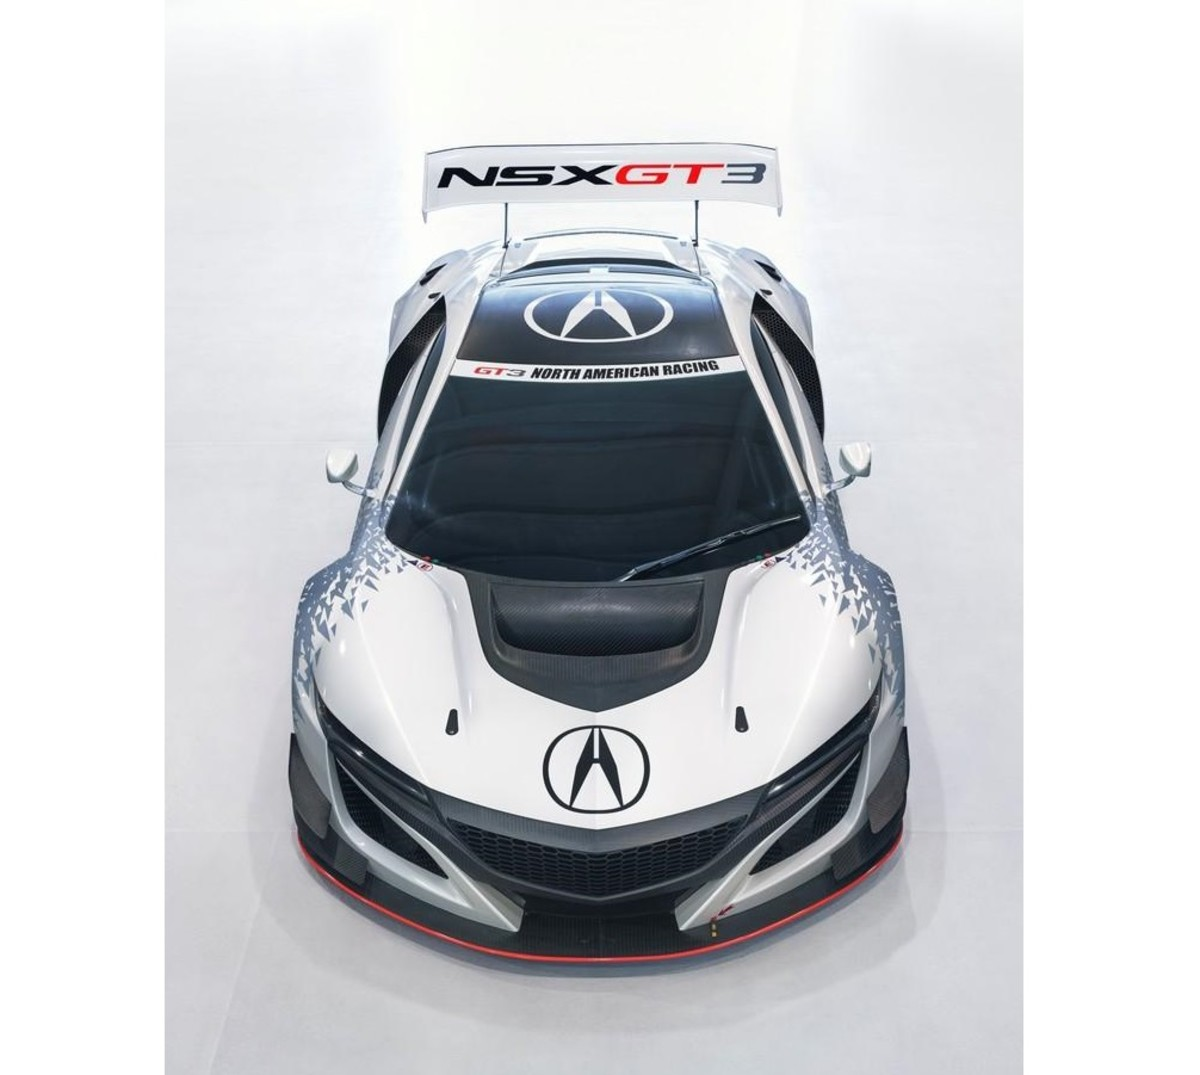 the-acura-nsx-gt3-4.jpg